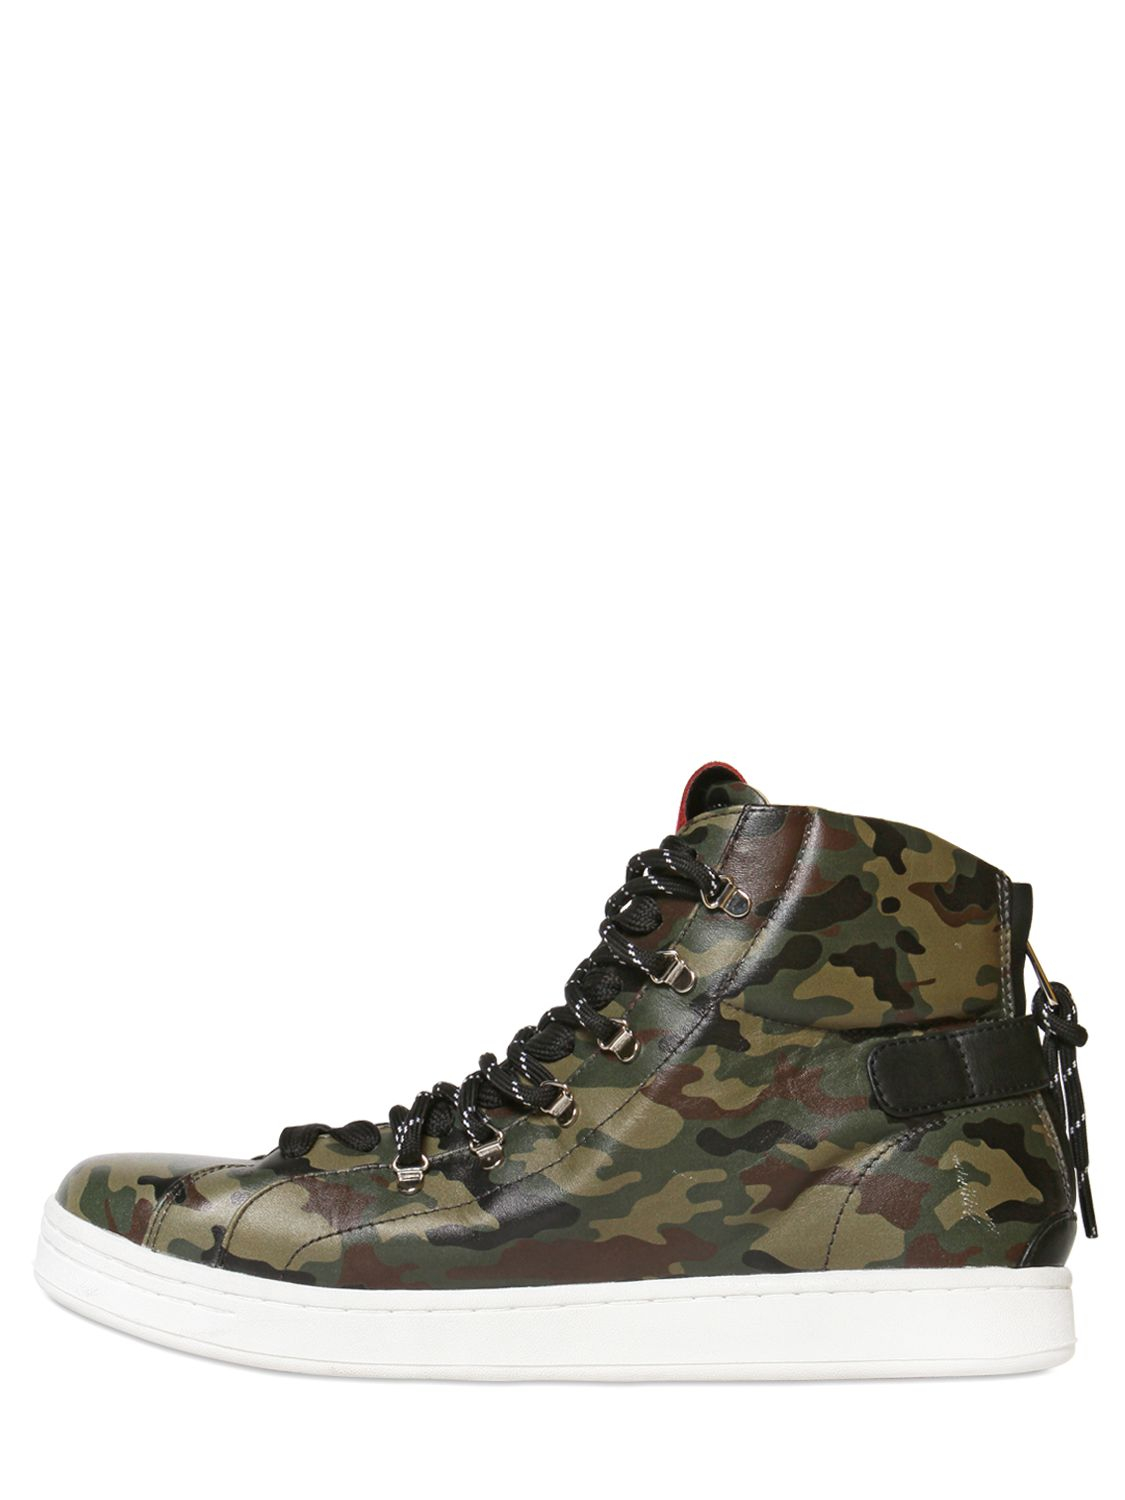 d288167e9738c Dolce & Gabbana Camouflage Leather High Top Sneakers in Green for ...